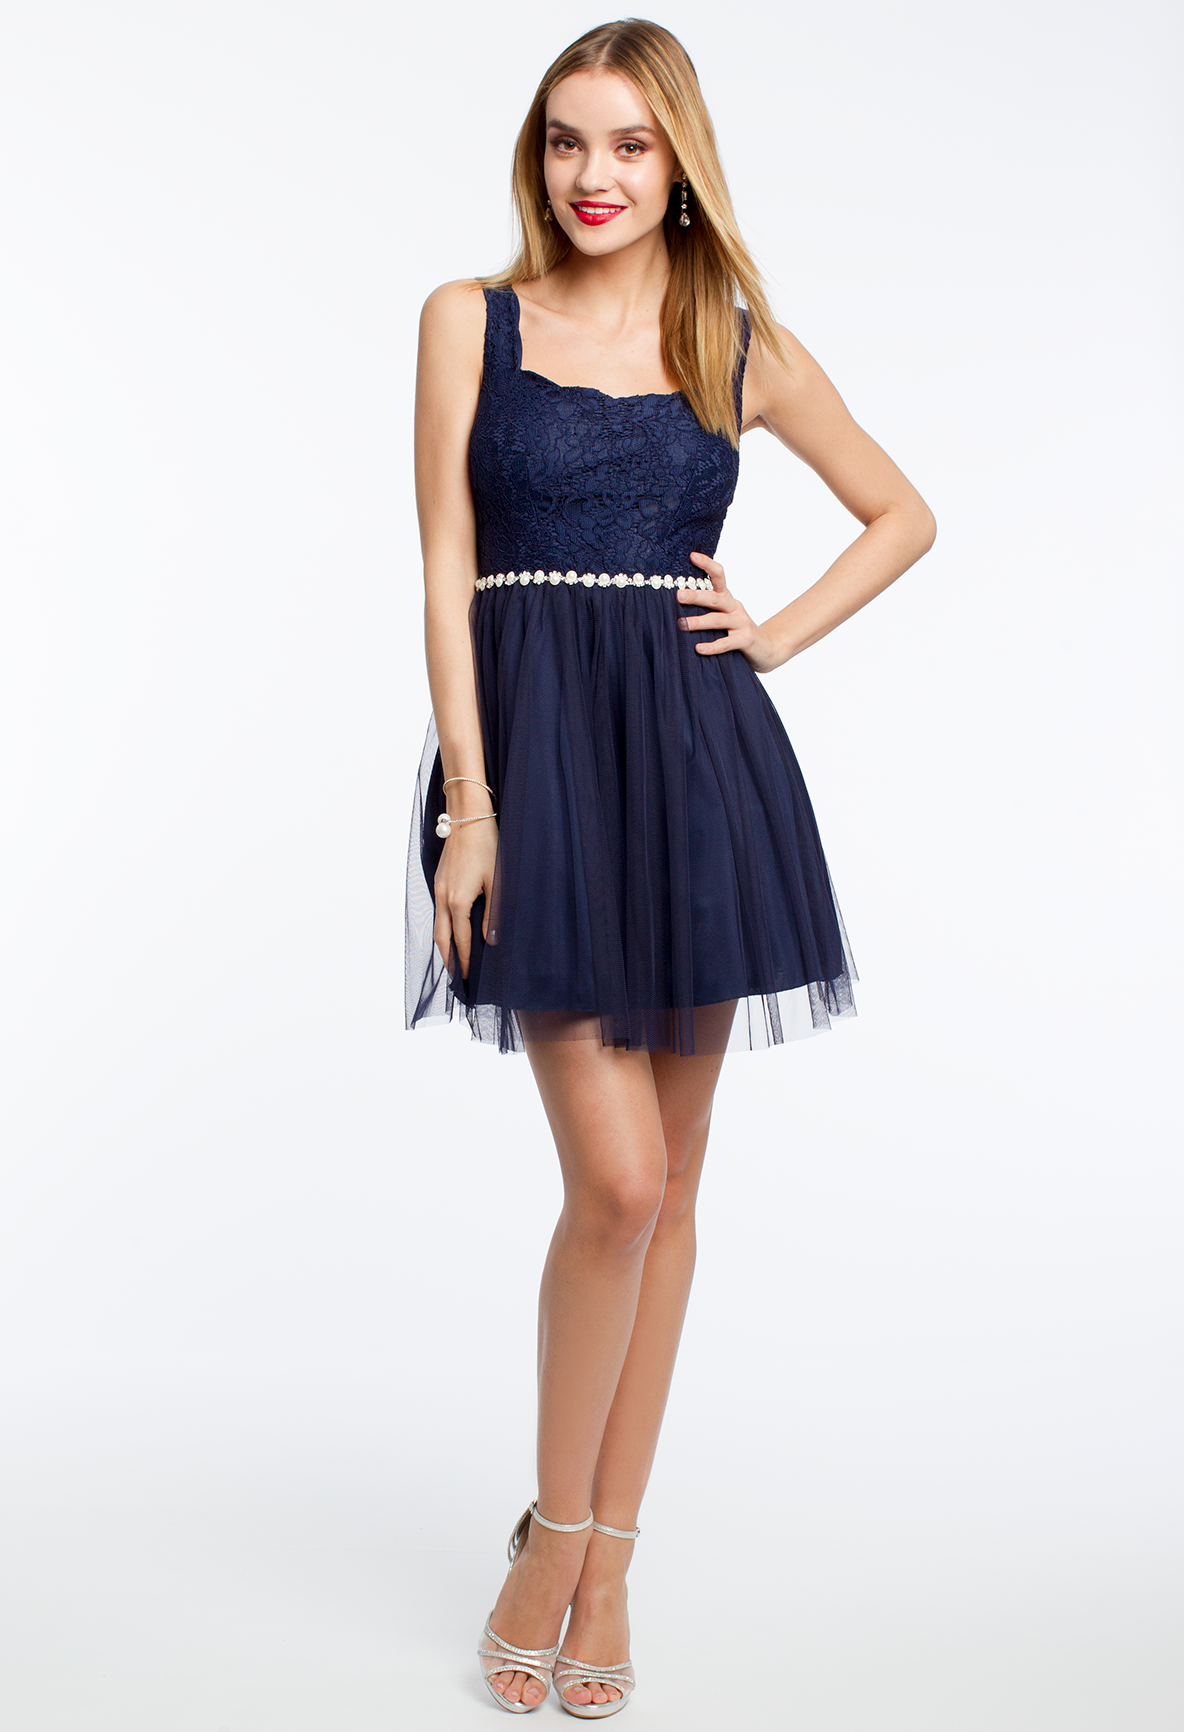 Lace with pearl trim party dress camillelavie graduate in style